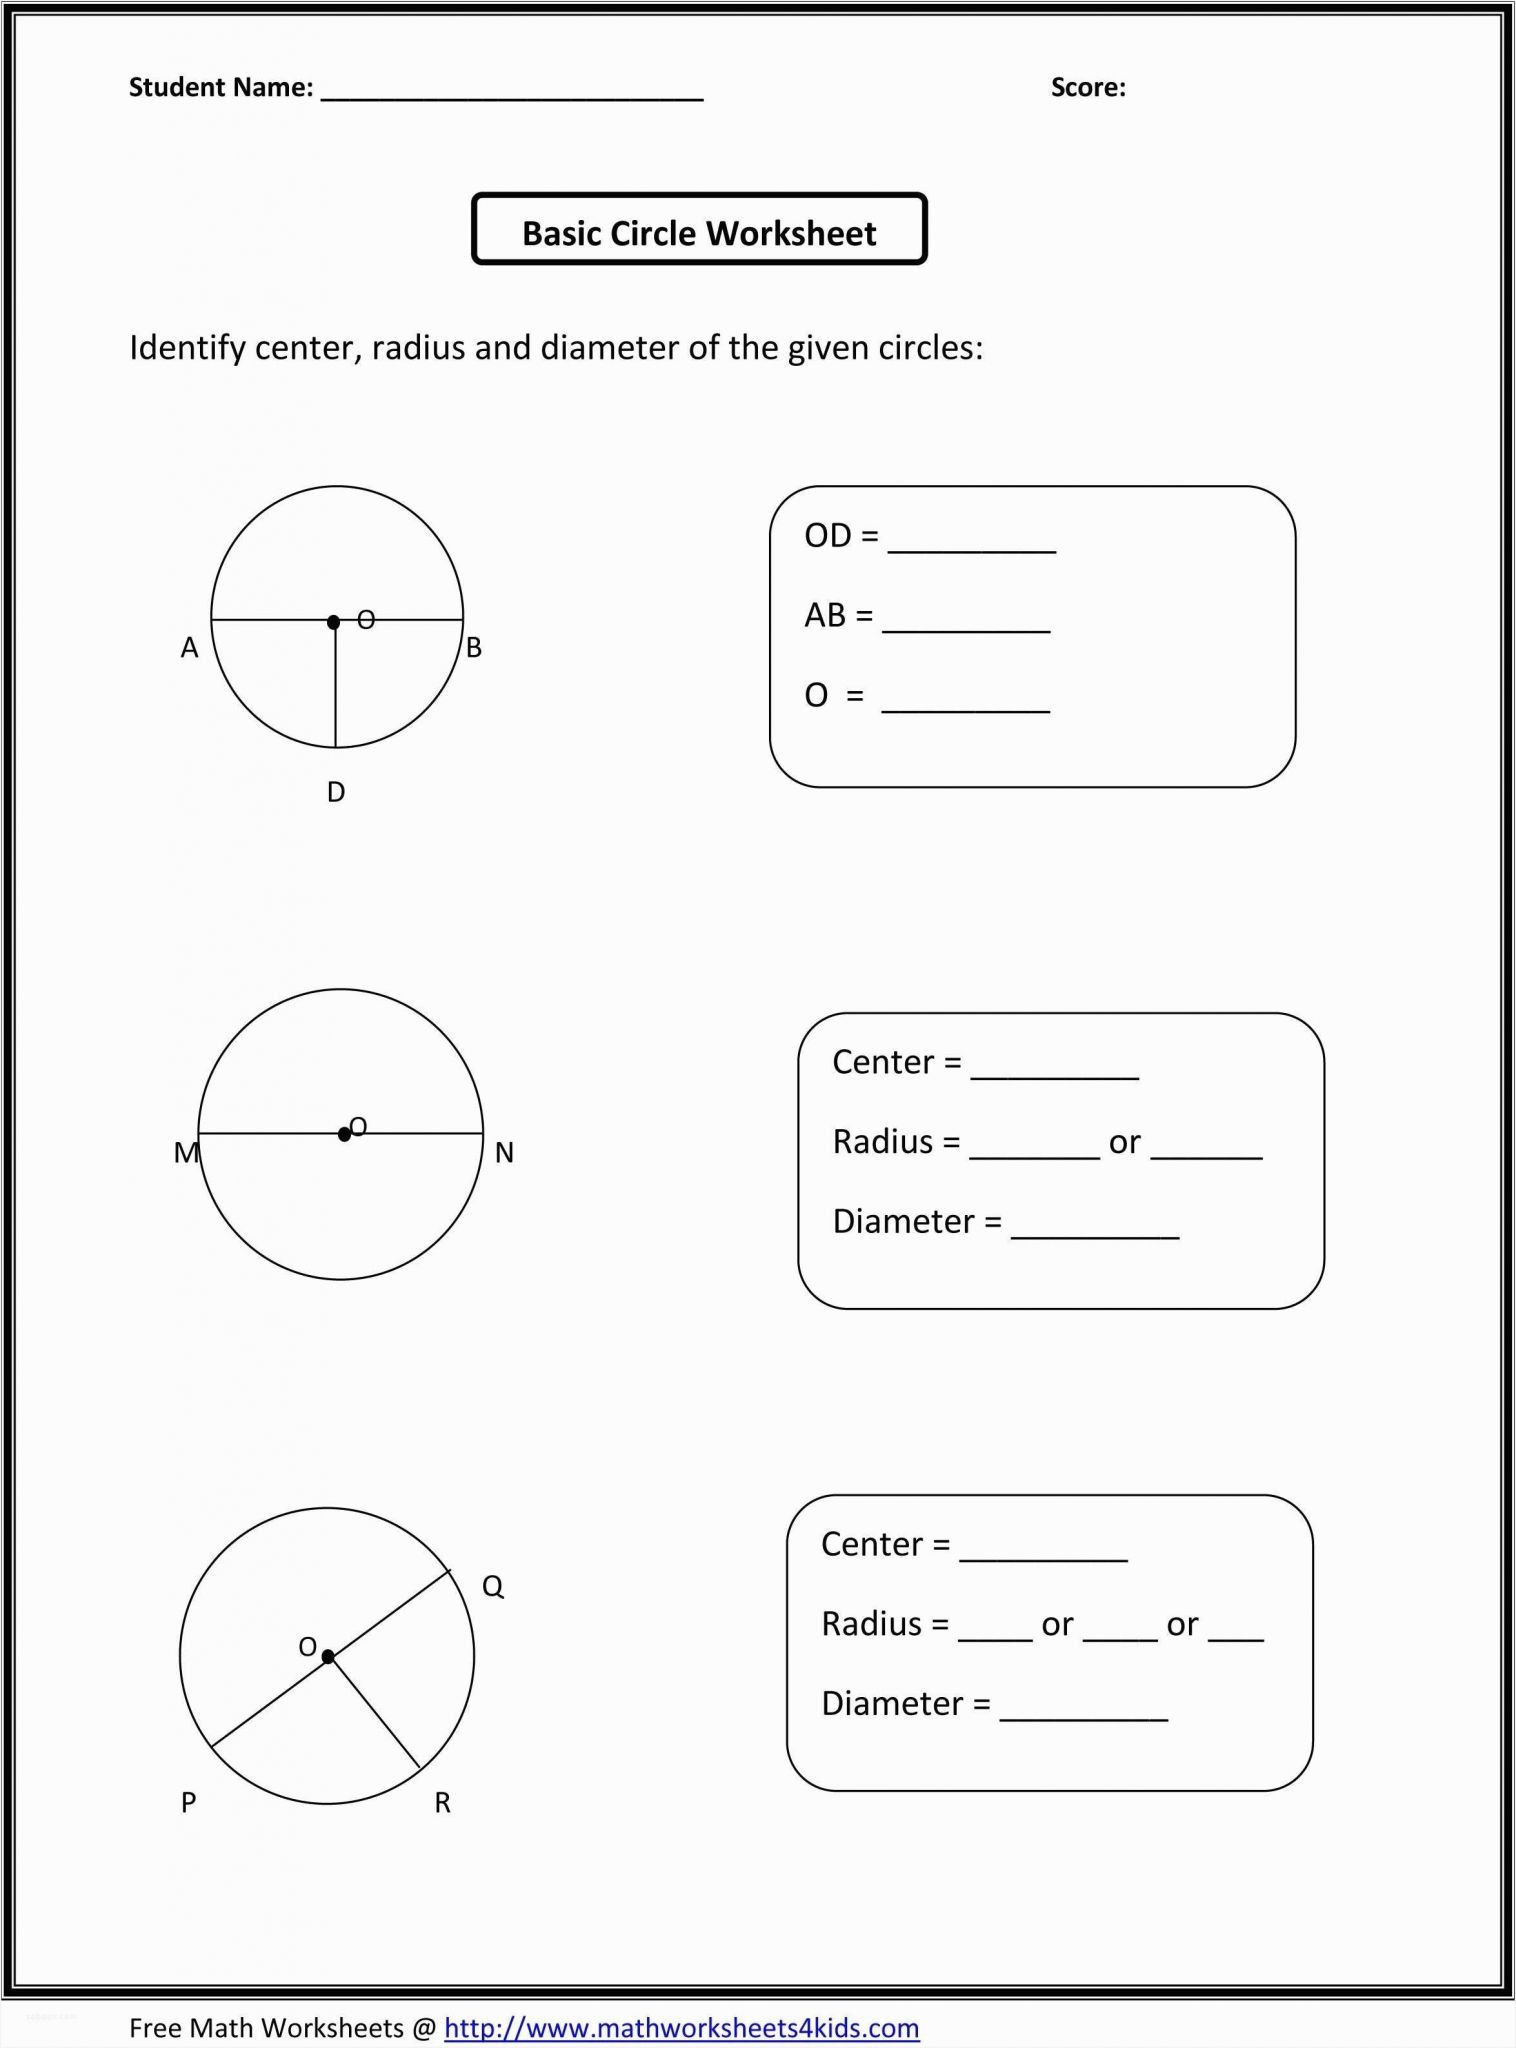 Math Models Worksheet 41 Relations And Functions Answers